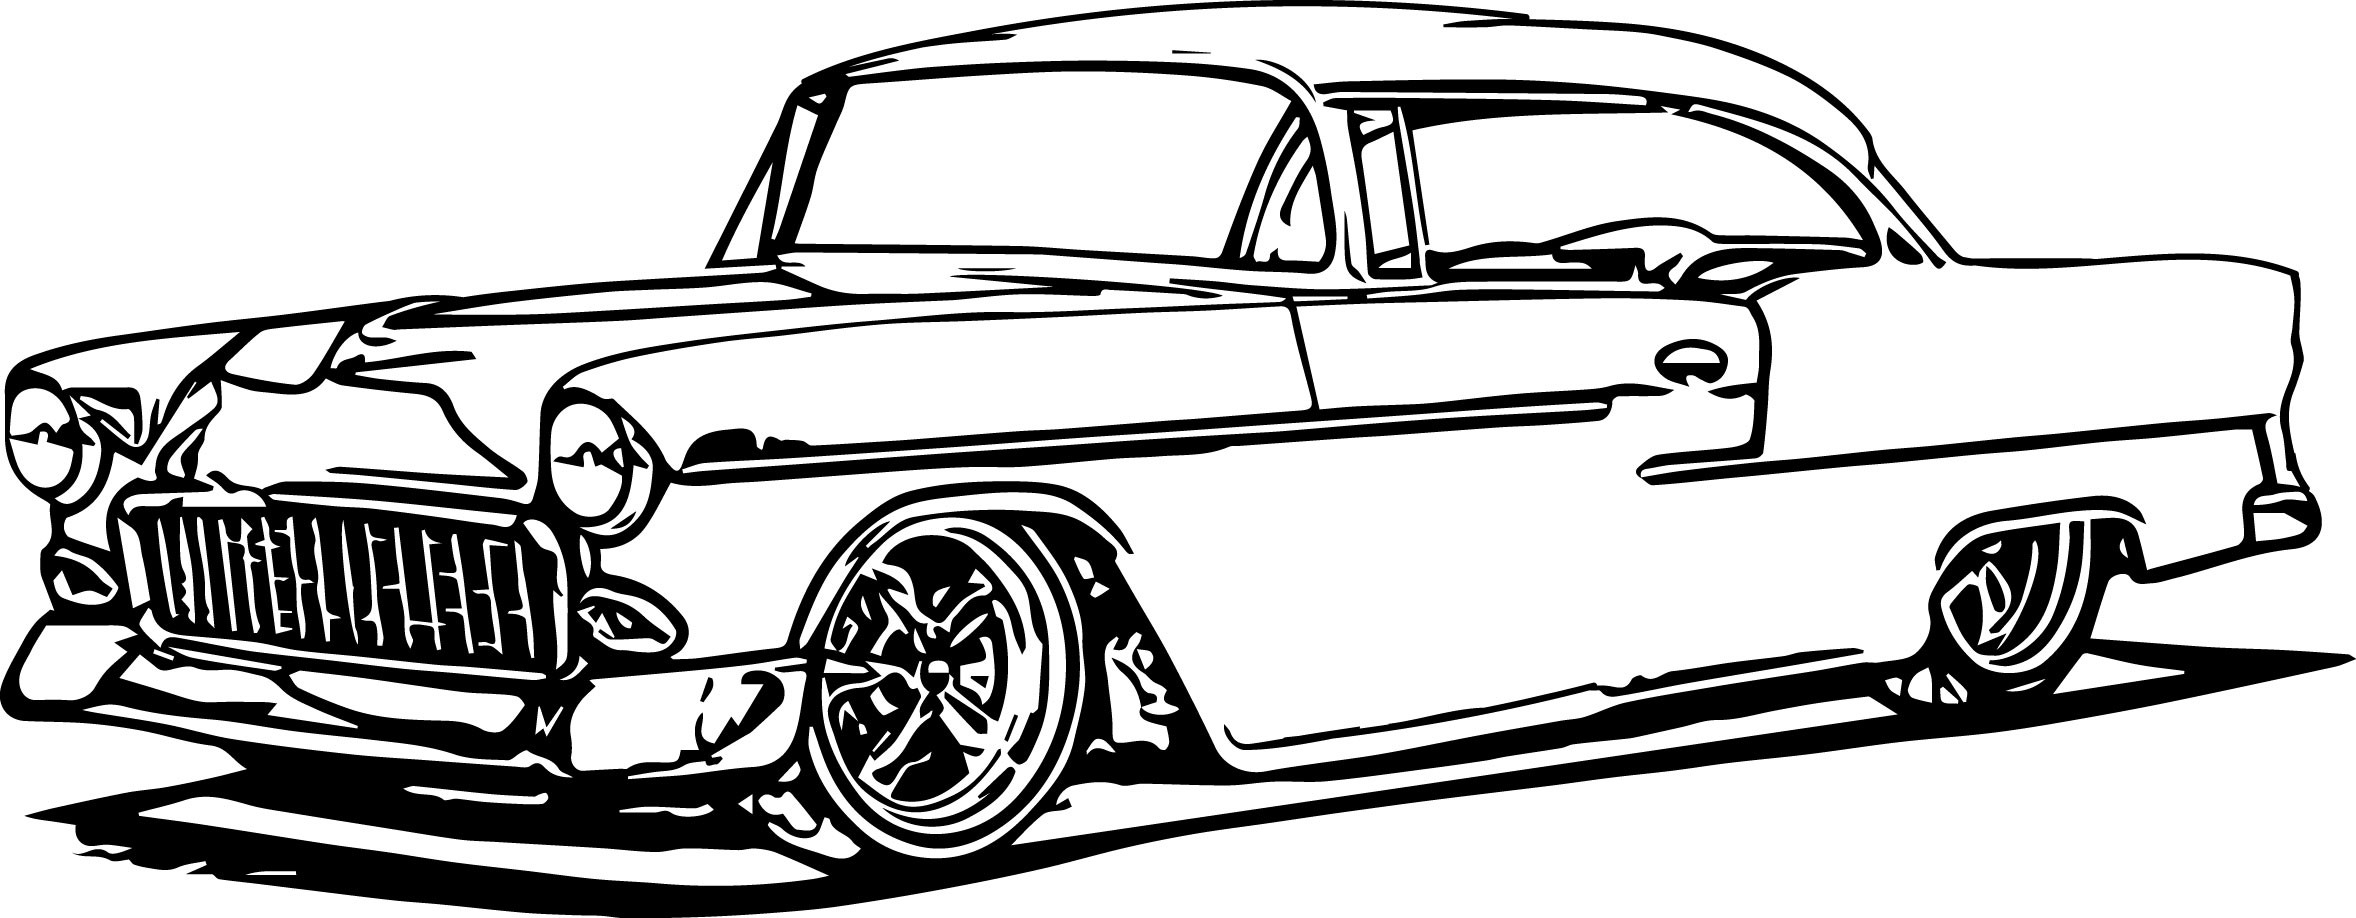 Hot Rod Coloring Pages To Print Download